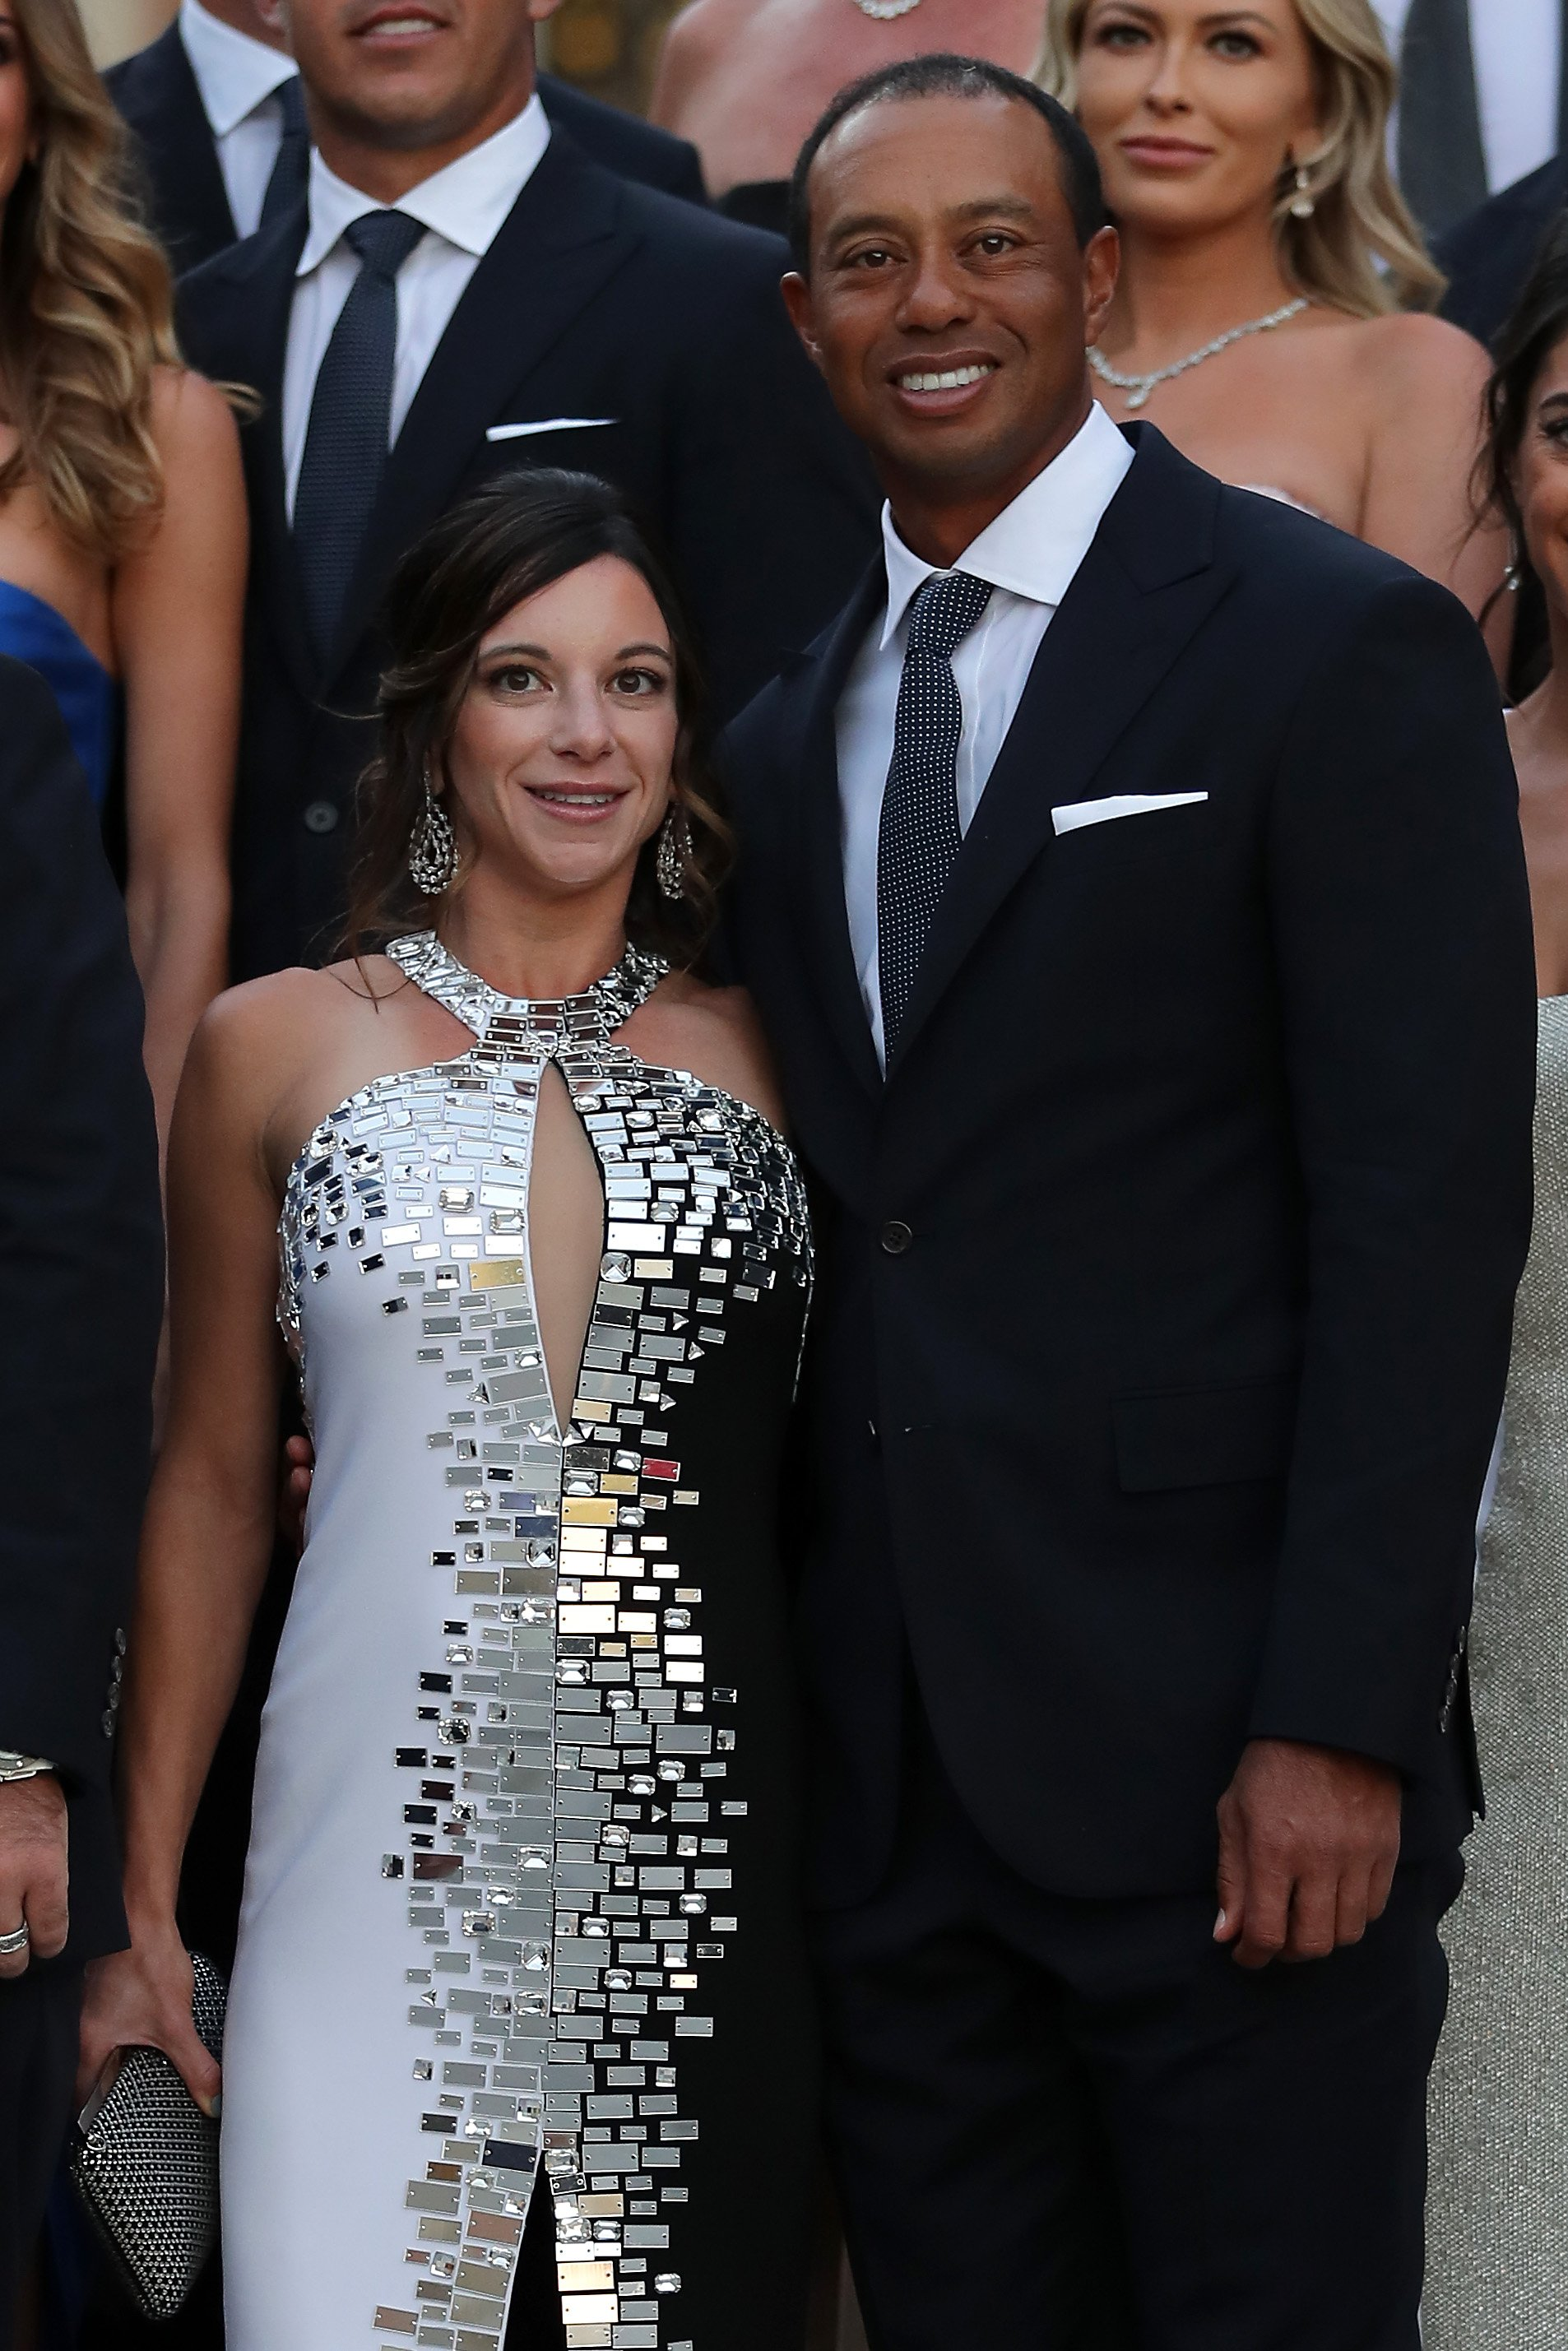 Tiger Woods and Erica Herman before the Ryder Cup gala dinner at the Palace of Versailles. September, 2018. | Photo: GettyImages